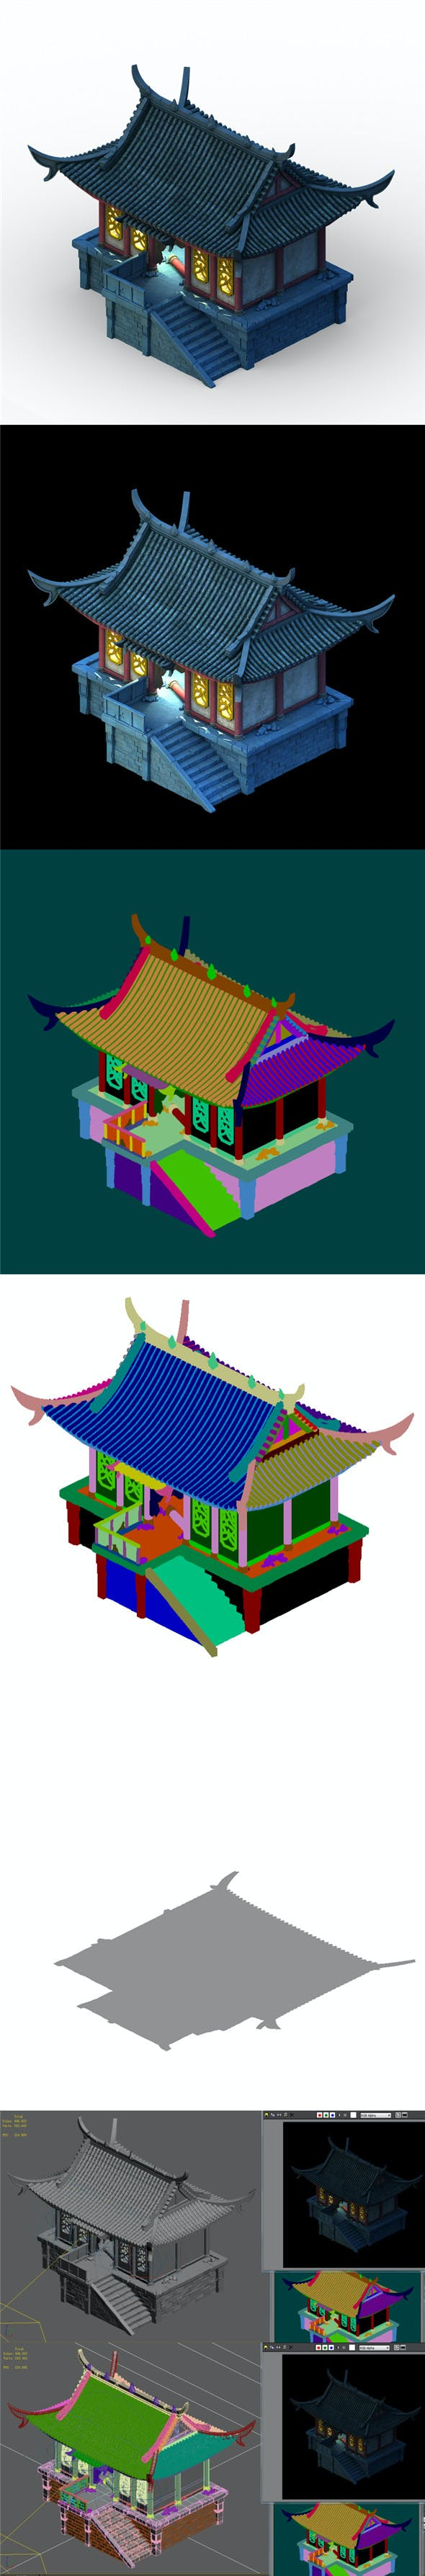 Building ghost house - haunted house 01 - 3DOcean Item for Sale